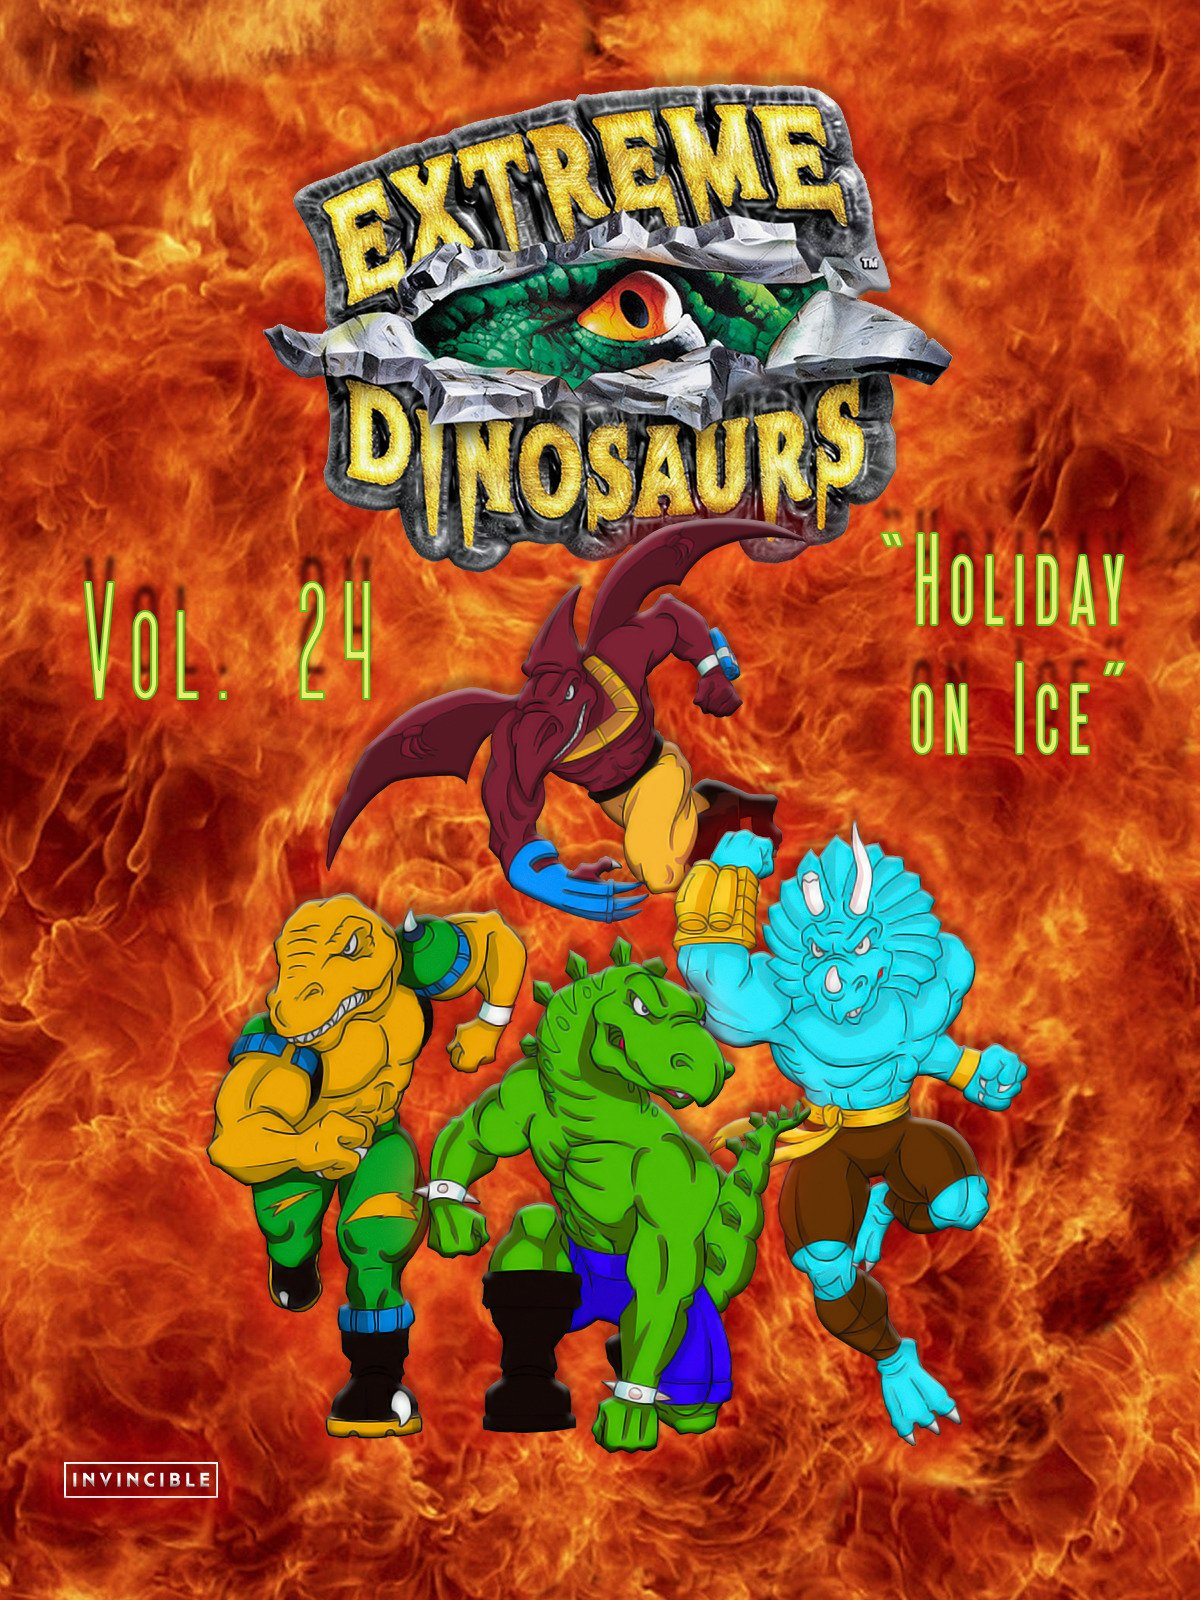 Extreme Dinosaurs Vol. 24Holiday on Ice